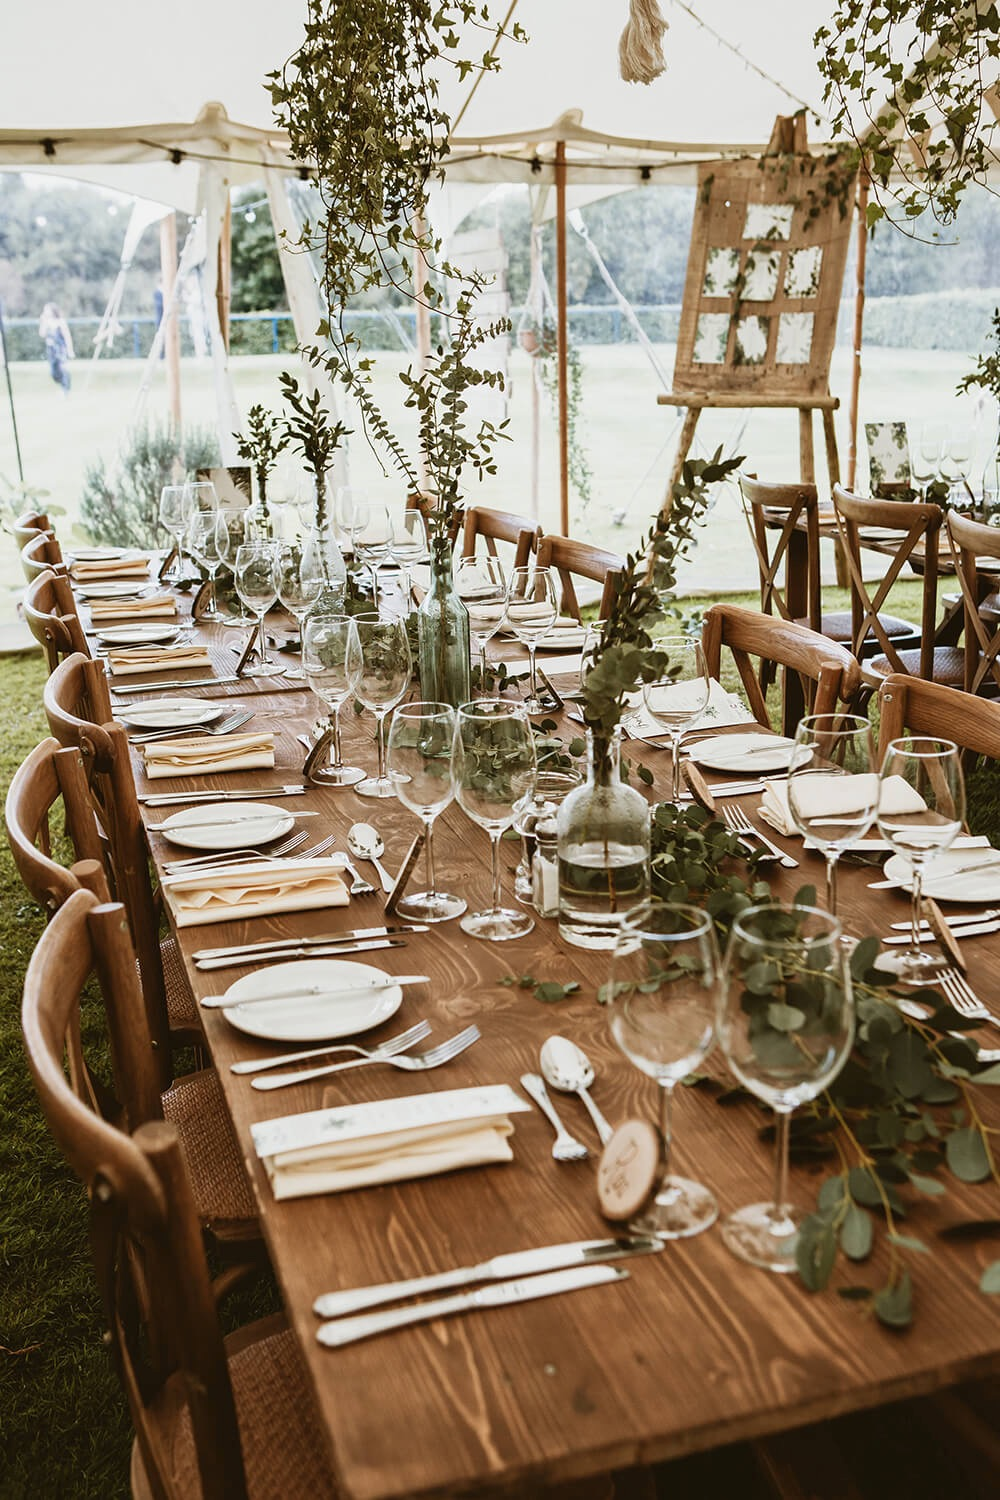 Tablescape with natural table decorations using flowers in wedding marquee